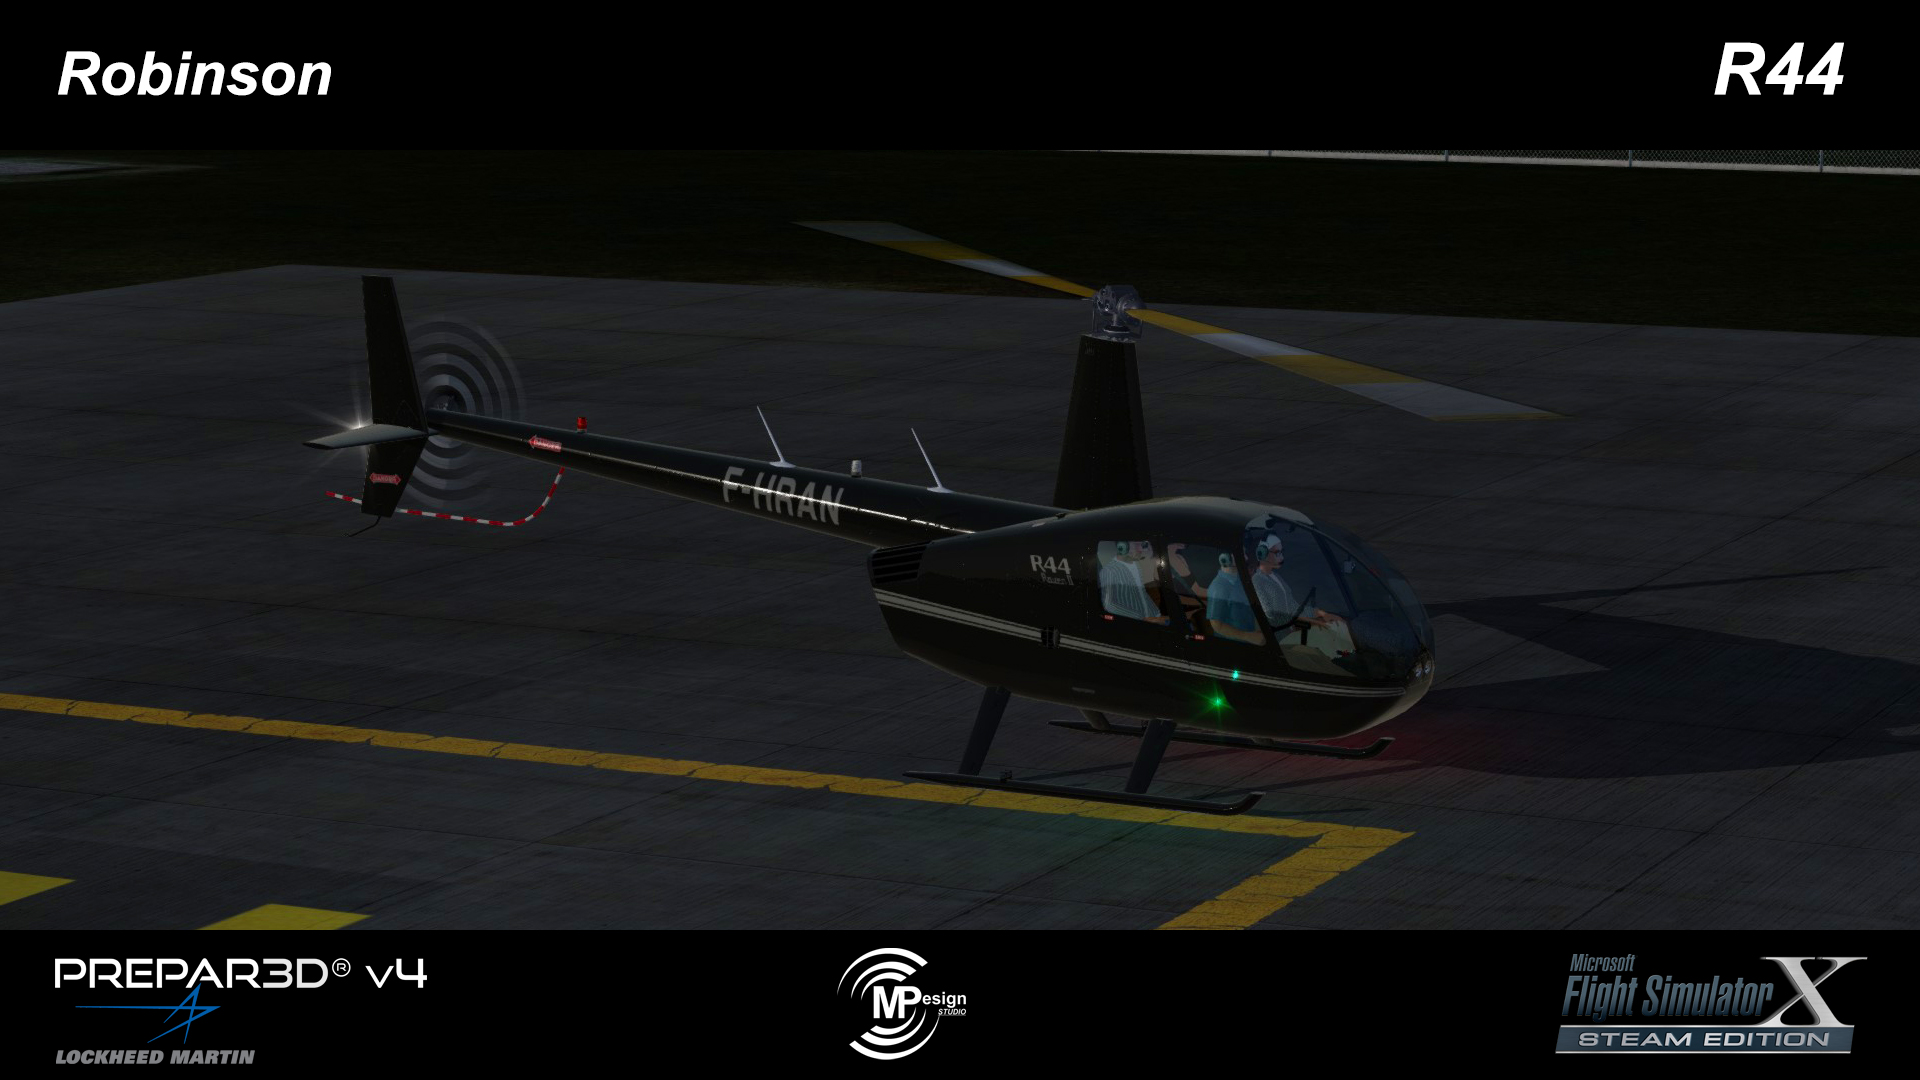 MP DESIGN STUDIO - ROBINSON R44 FSX P3D